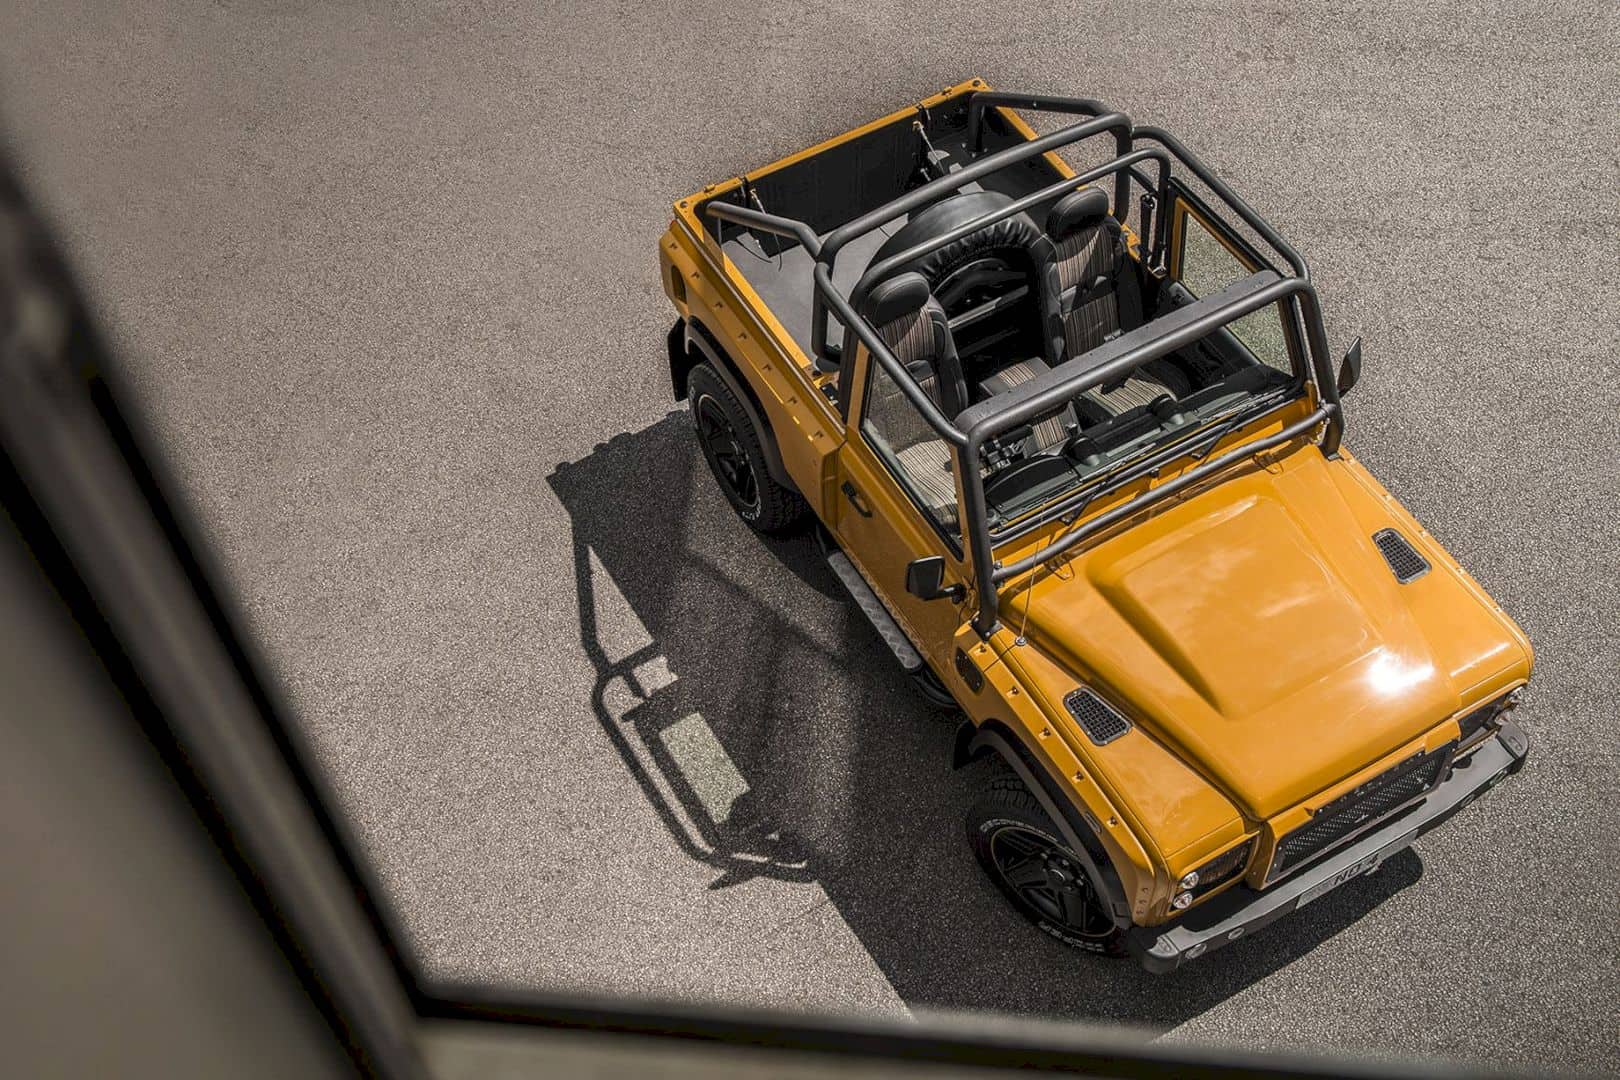 Defender 2.2 TDCI XS 90 - Chelsea Wide Track: For Those Who Loves to Brag